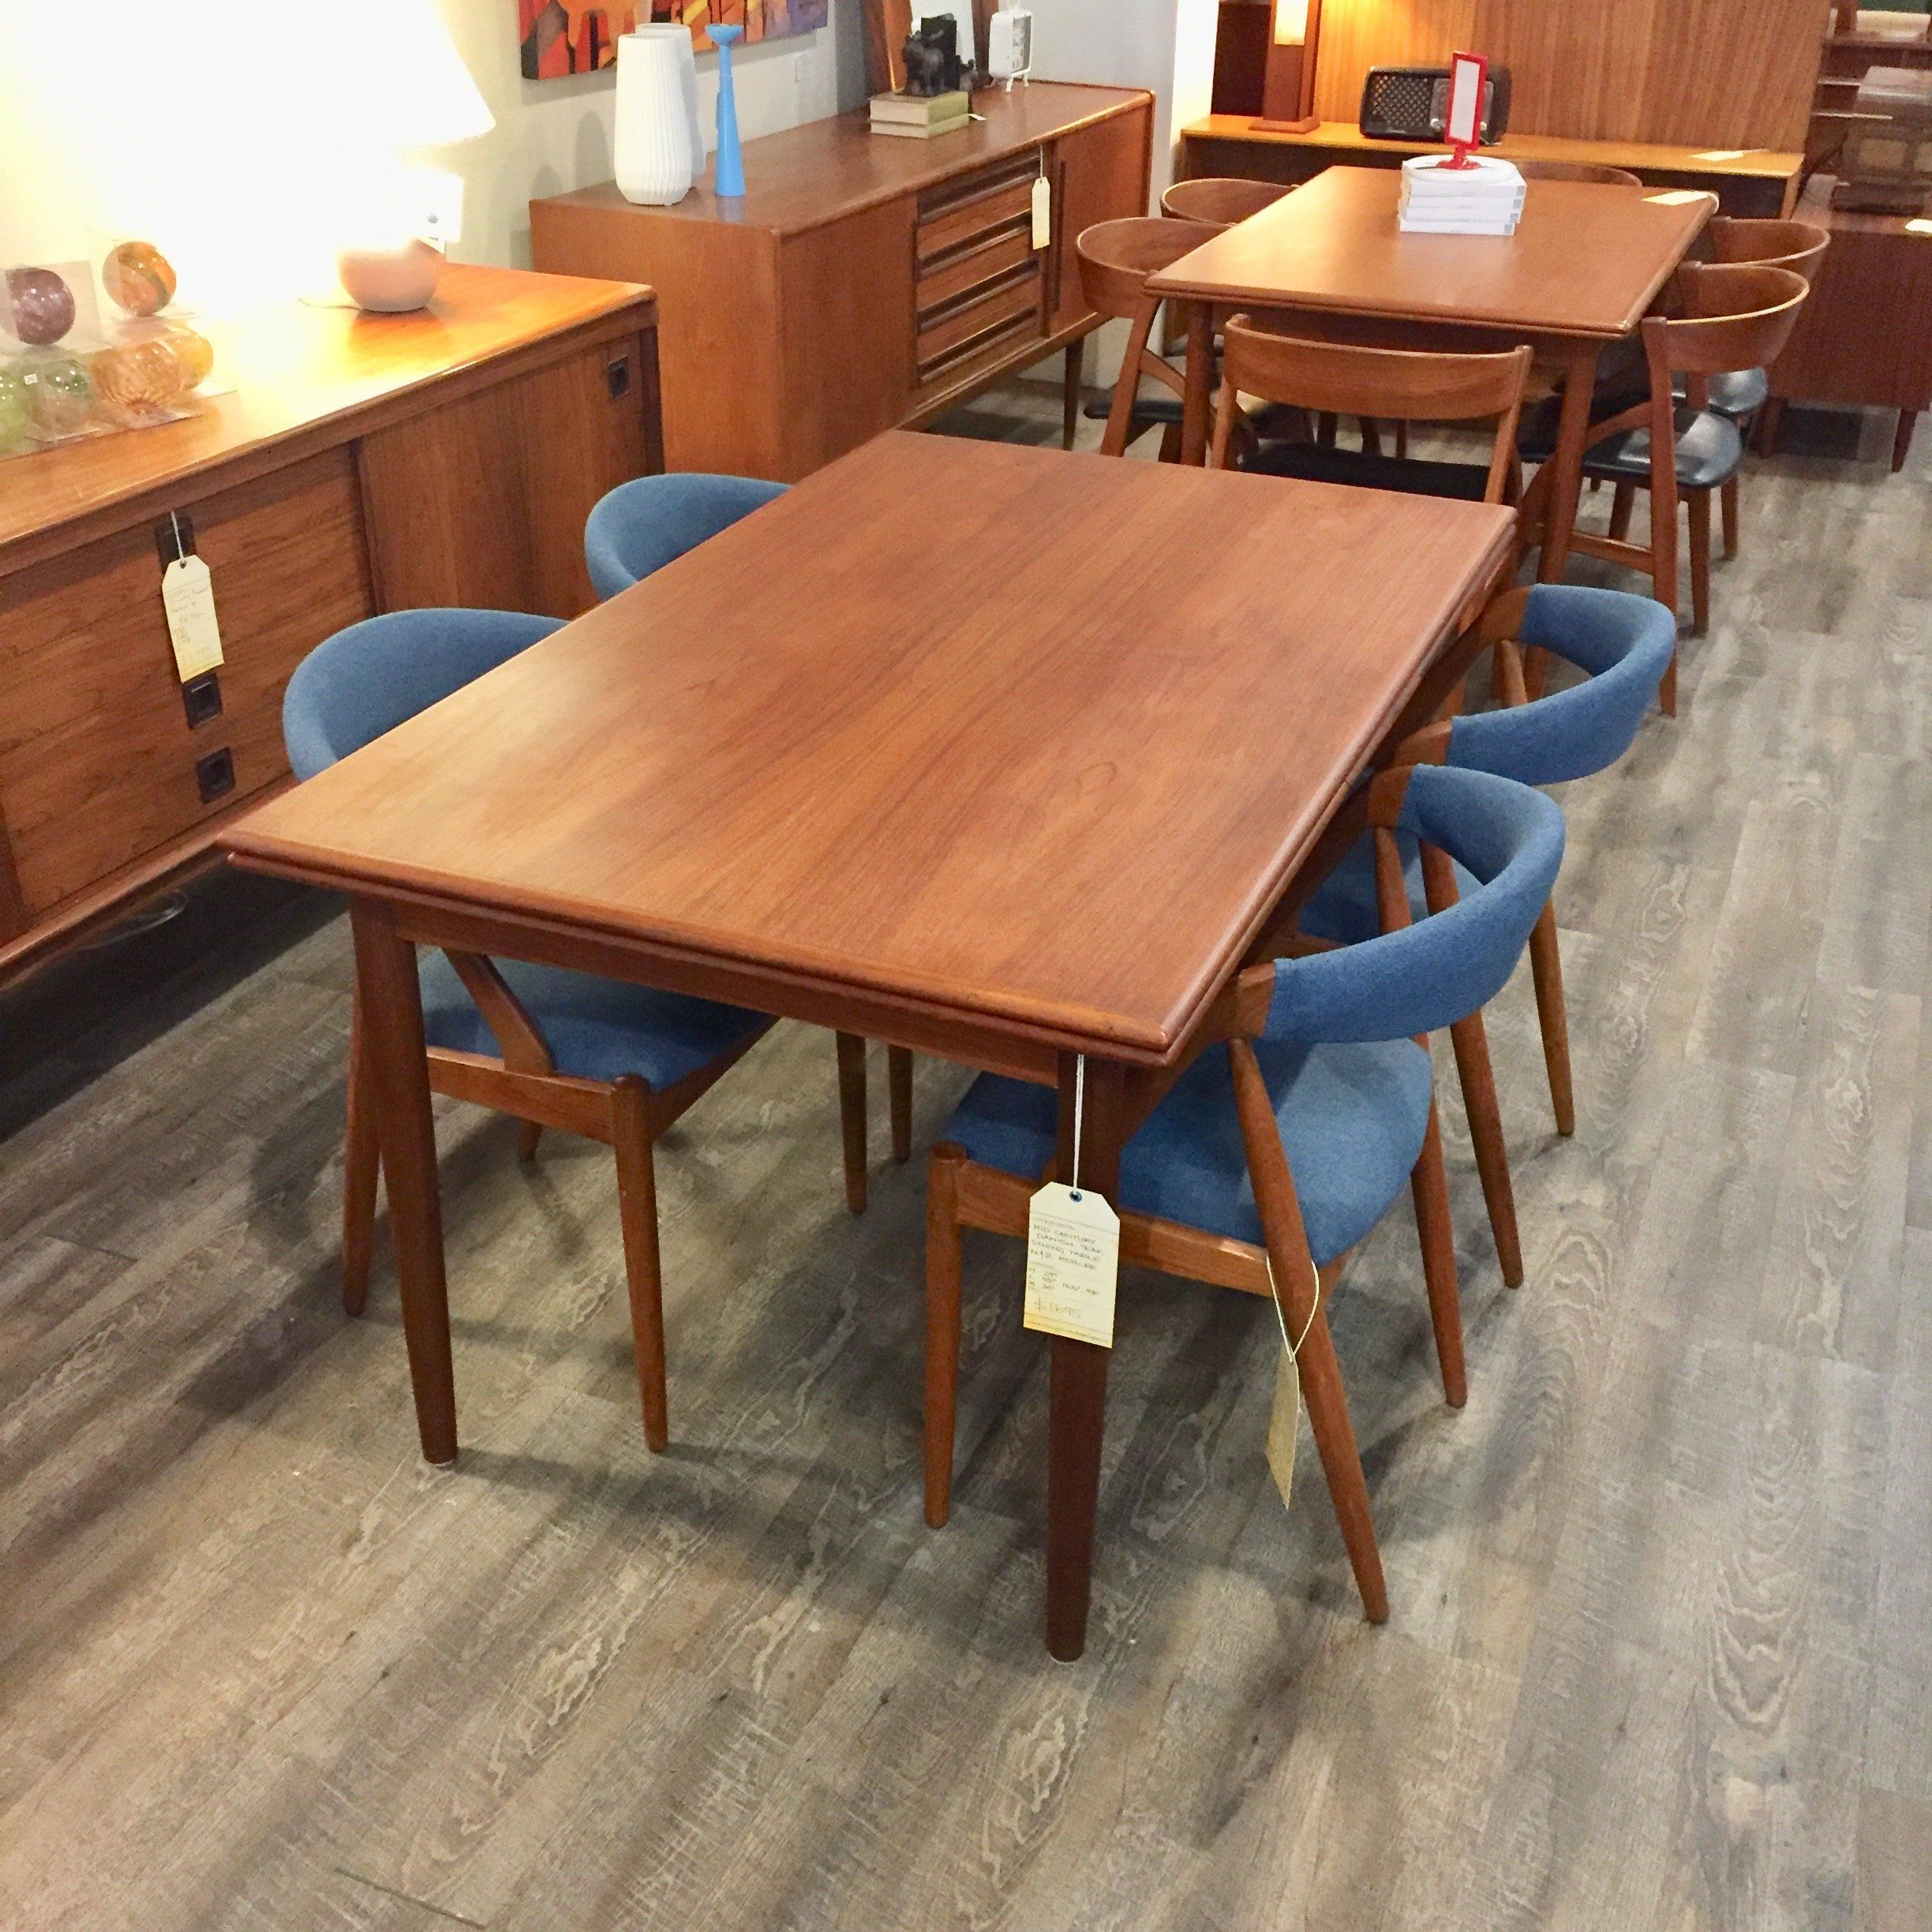 Quality Furniture With Clean Lines